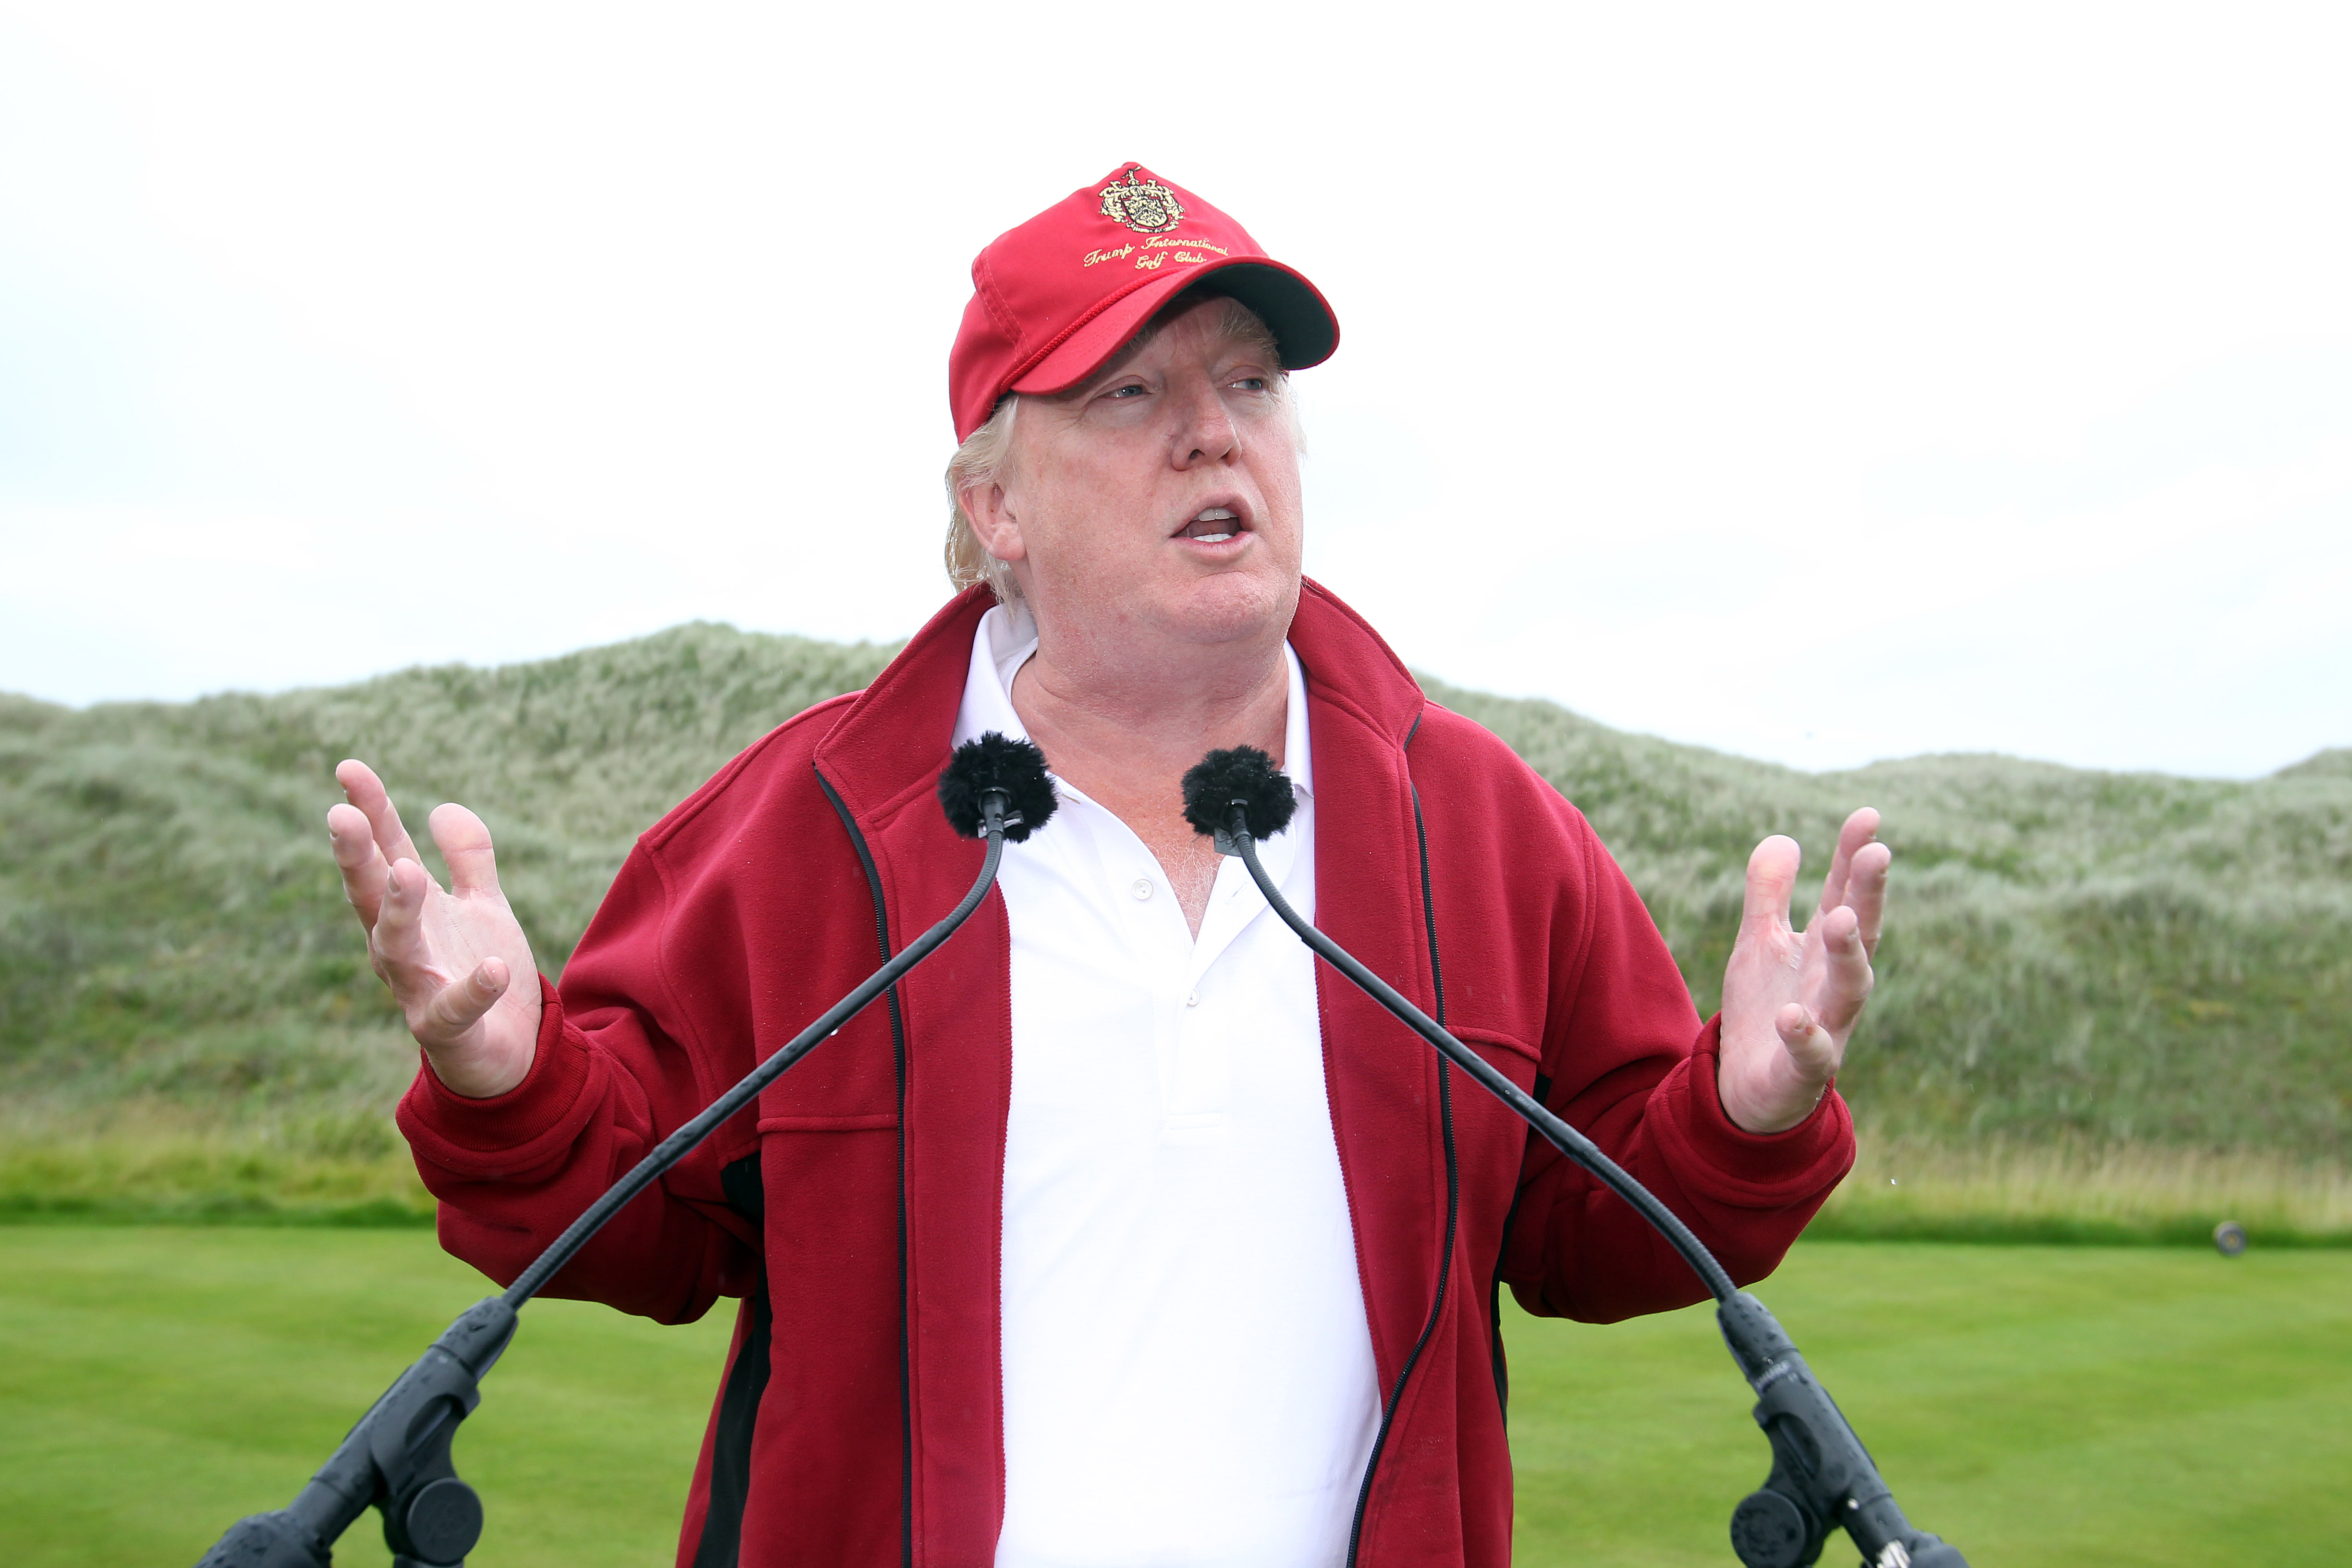 Donald Trump negotiating bid to buy Turnberry